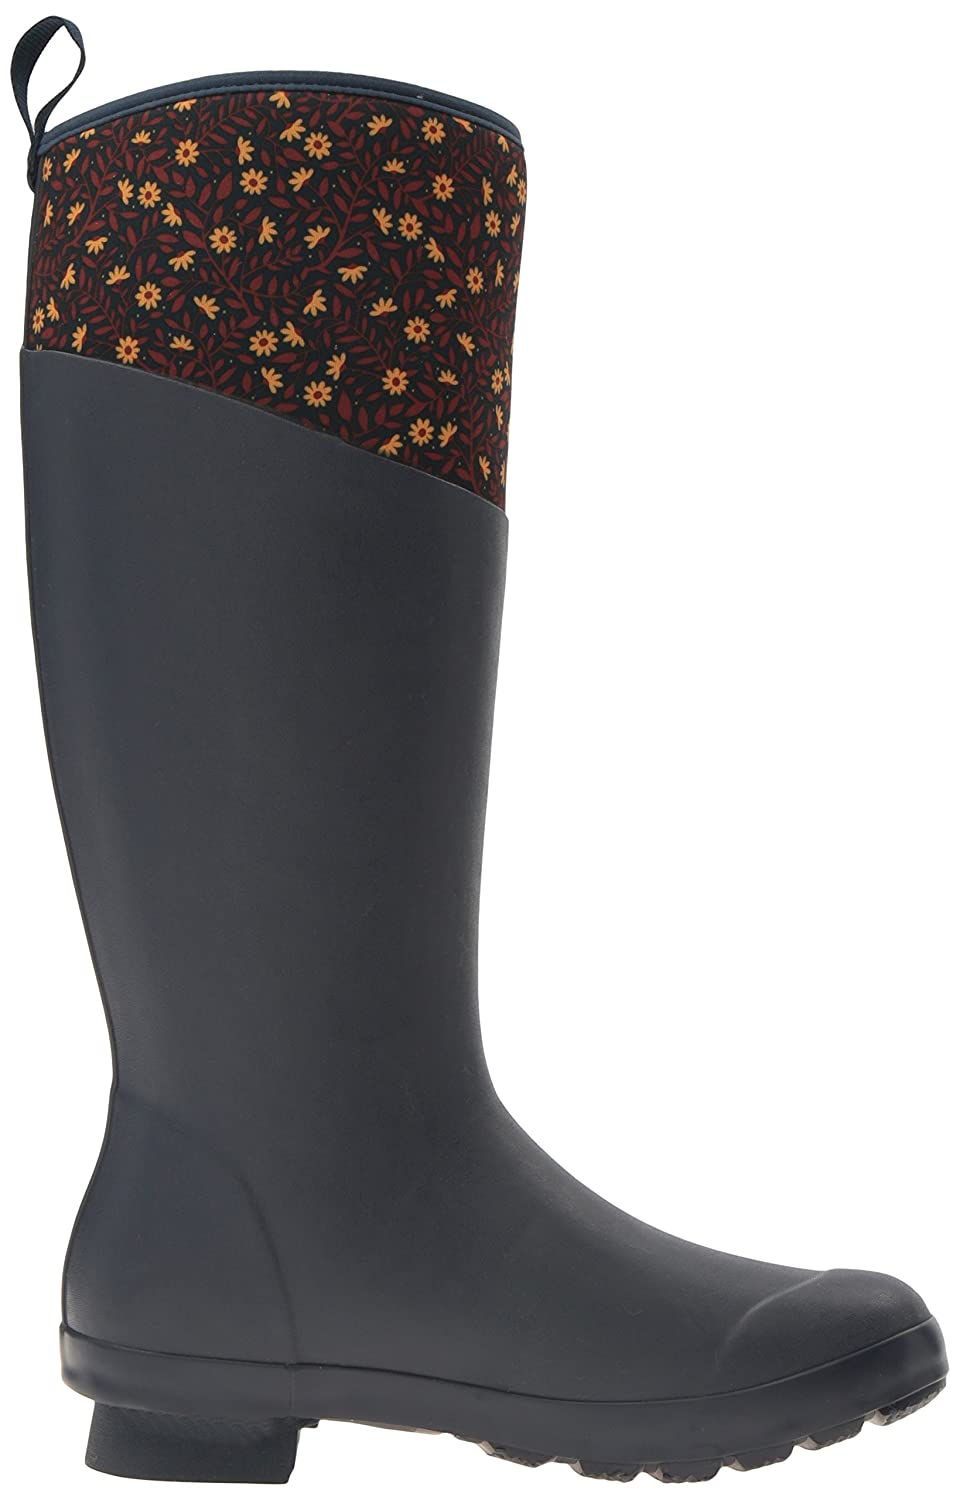 Muck Boot Women's Tremont Wellie Tall Snow B01LY1IKAR 11 B(M) US|Navy Meadows